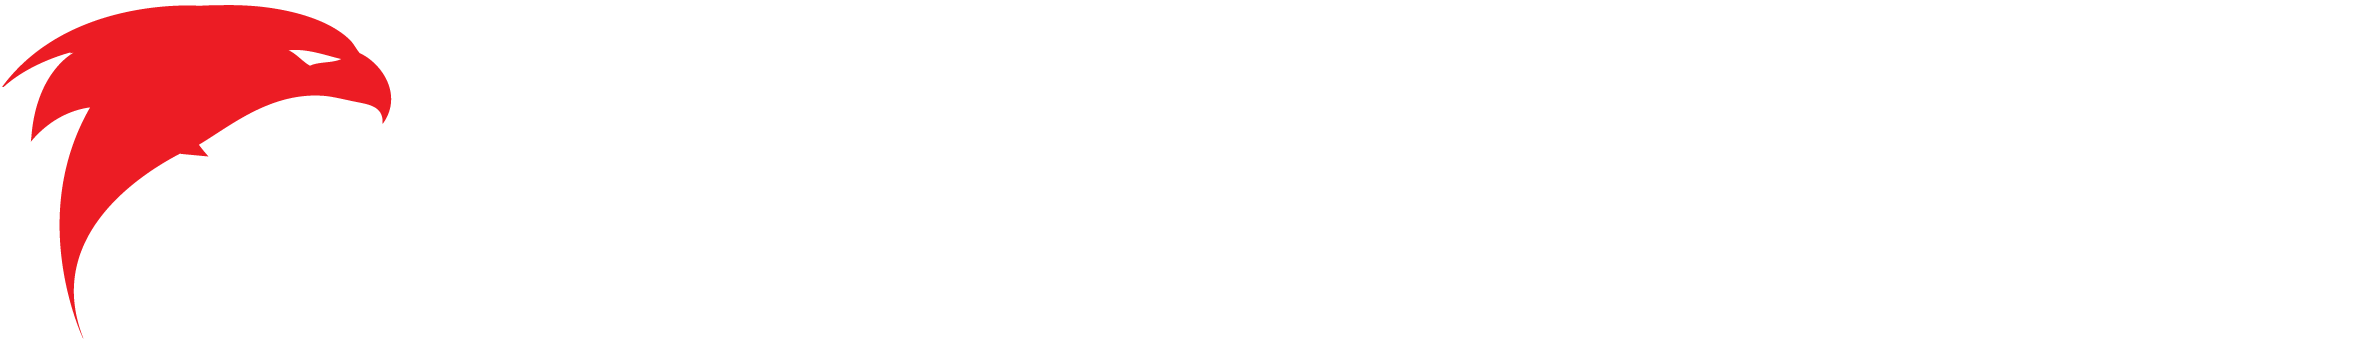 Certified Security Company